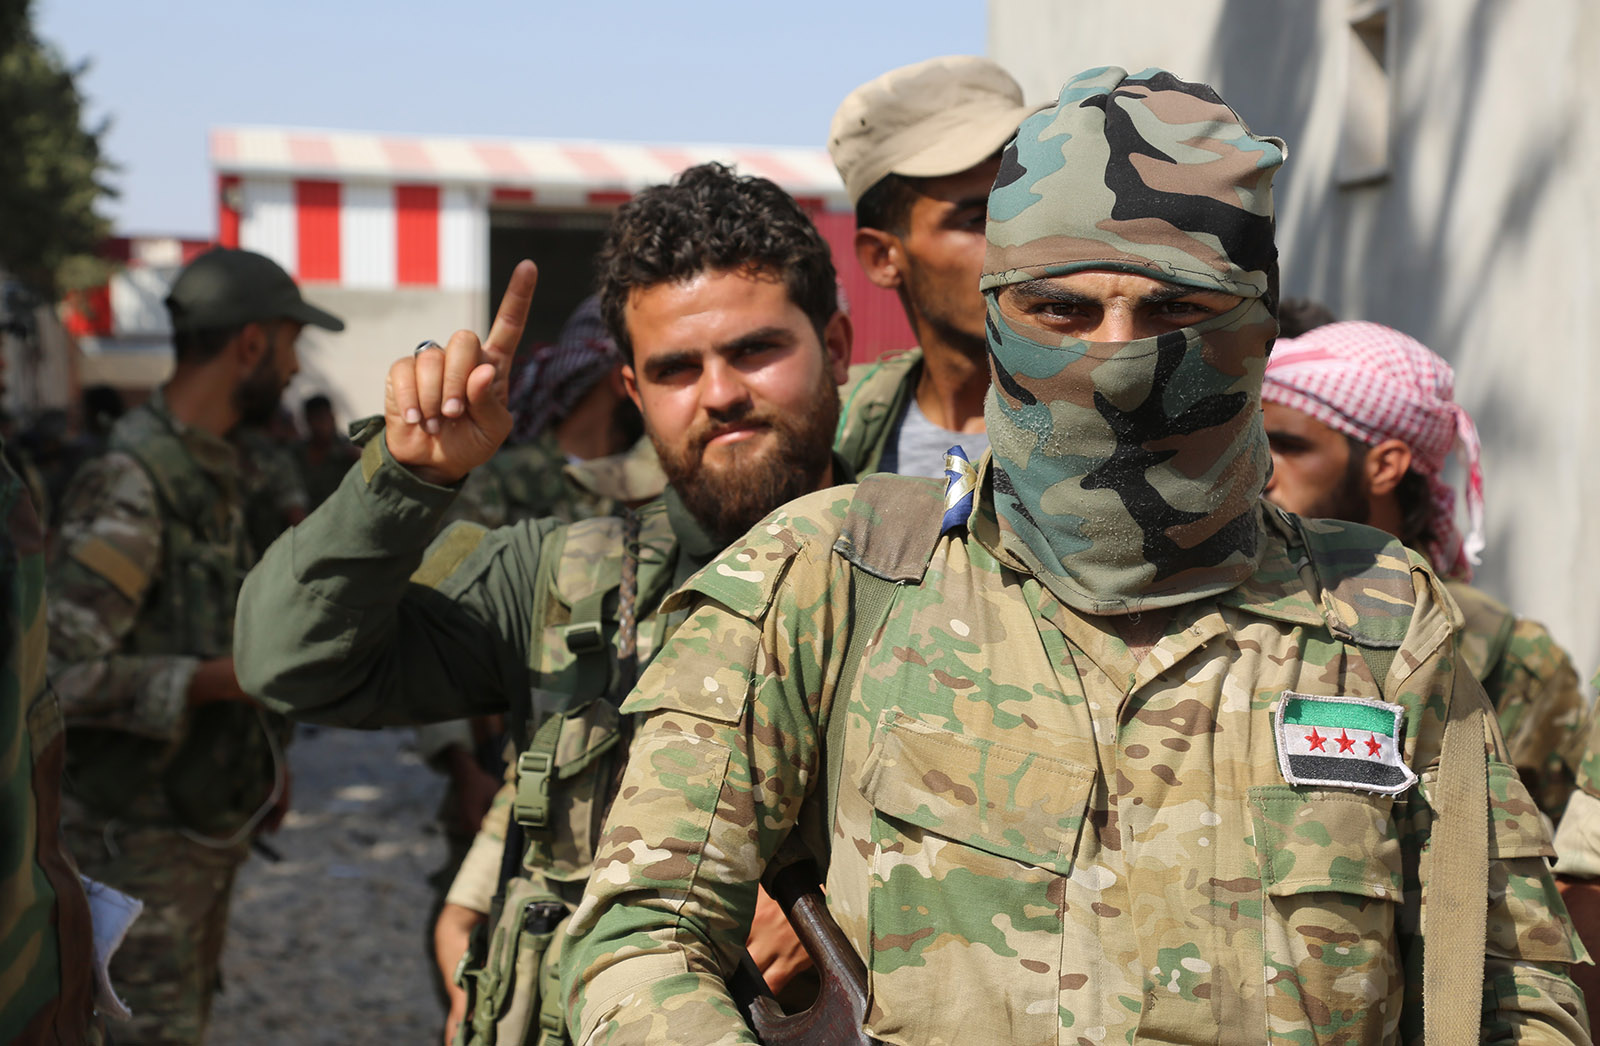 Members of the Syrian National Army participating in Turkey's Operation Peace Spring, Ras Al-Ayn district, northern Syria, October 13, 2019